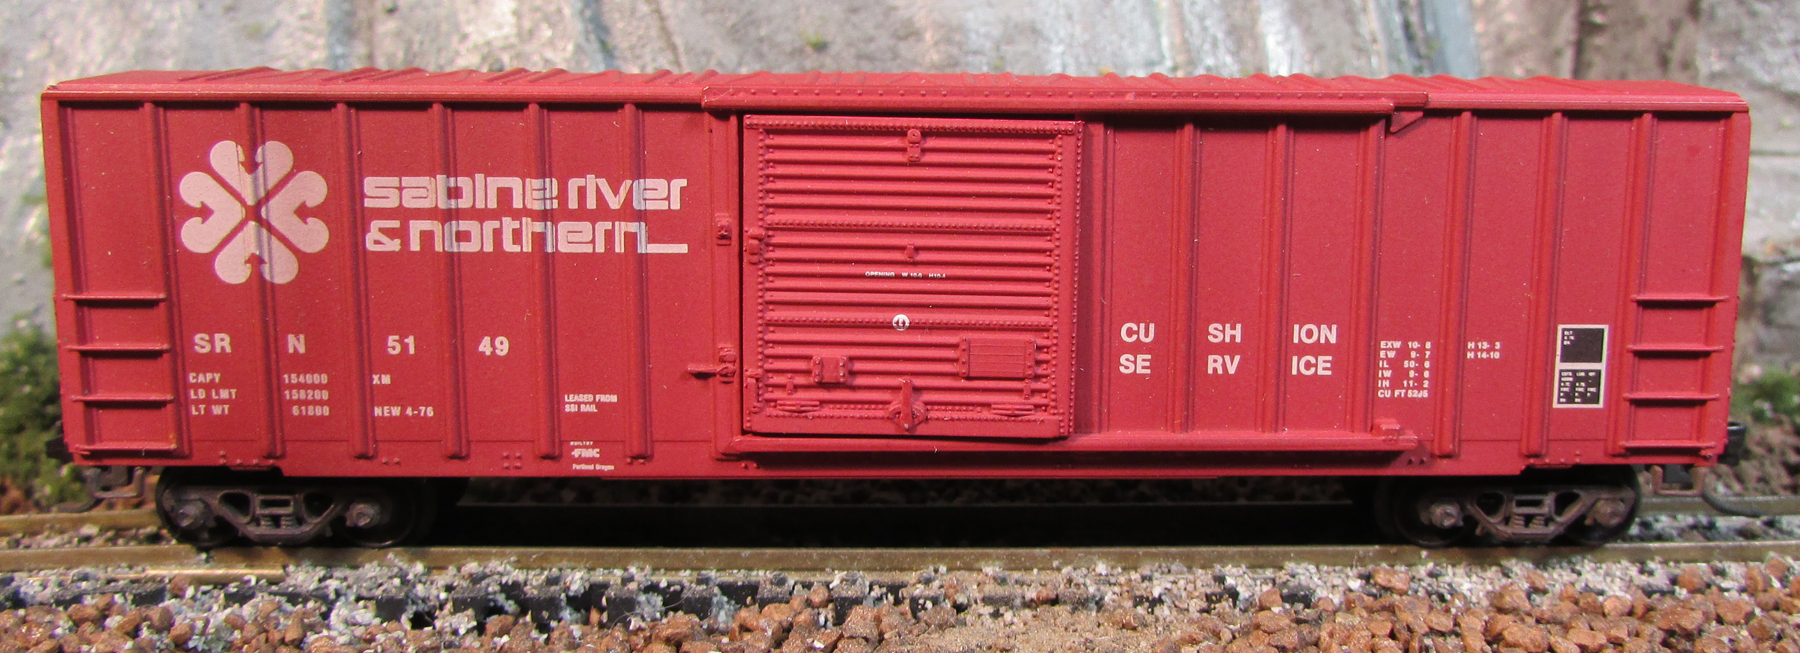 N Scale - Micro-Trains - 25100 - Boxcar, 50 Foot, FMC, 5077 - Sabine River & Northern - 5149